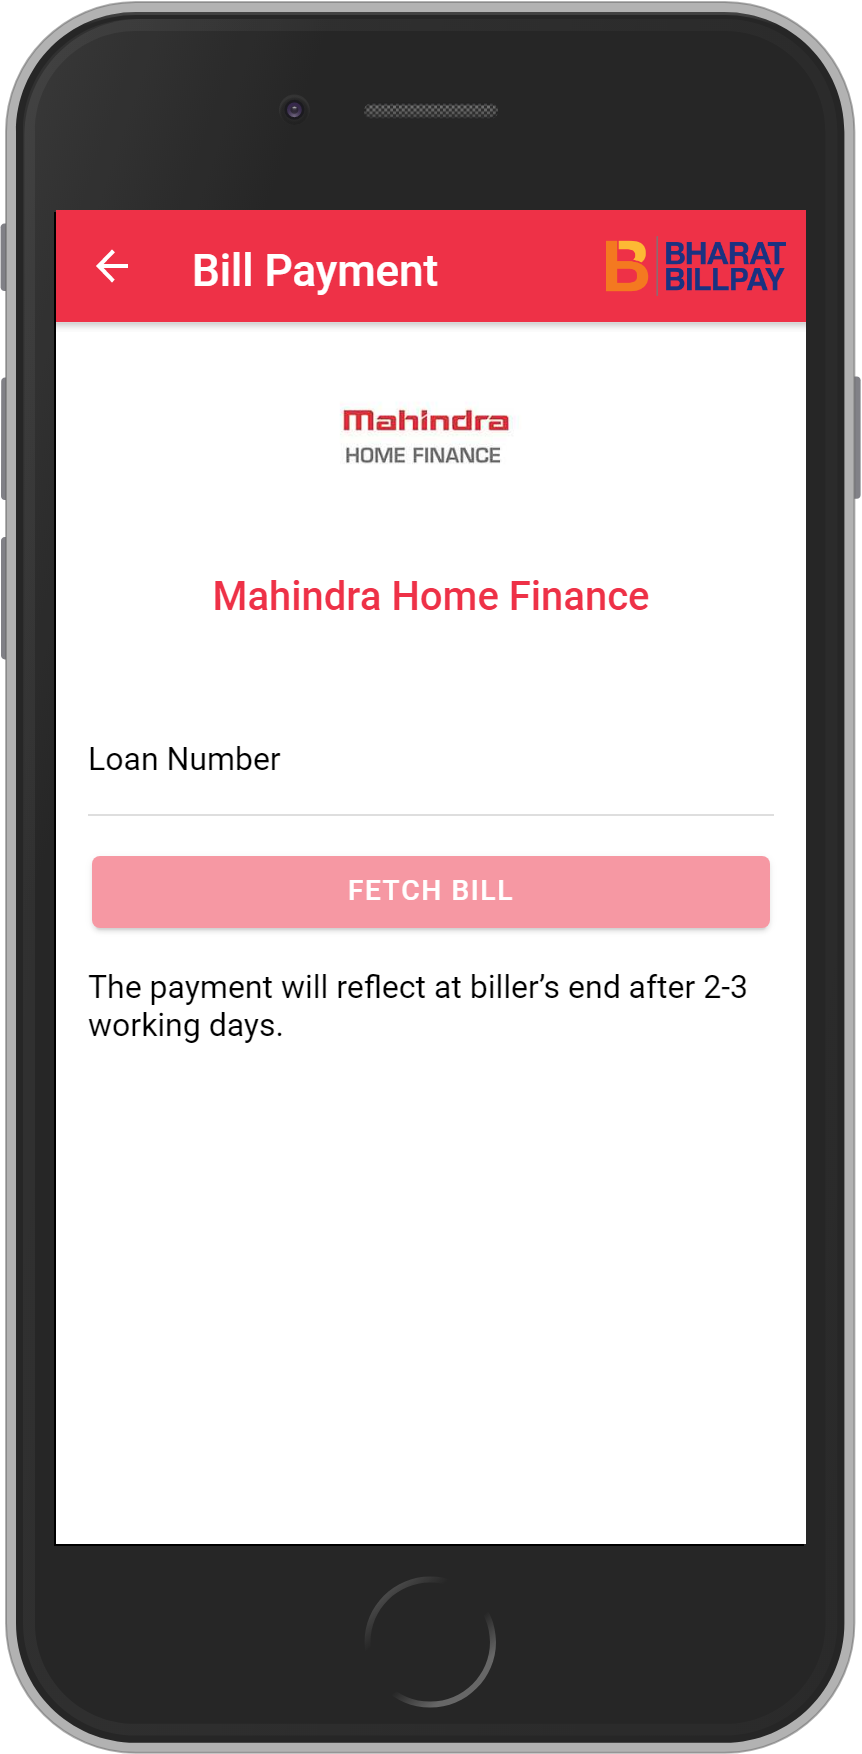 Get UNLIMITED <b>0.1%</b> CASHBACK on Mahindra Home Finance Loan Payment.